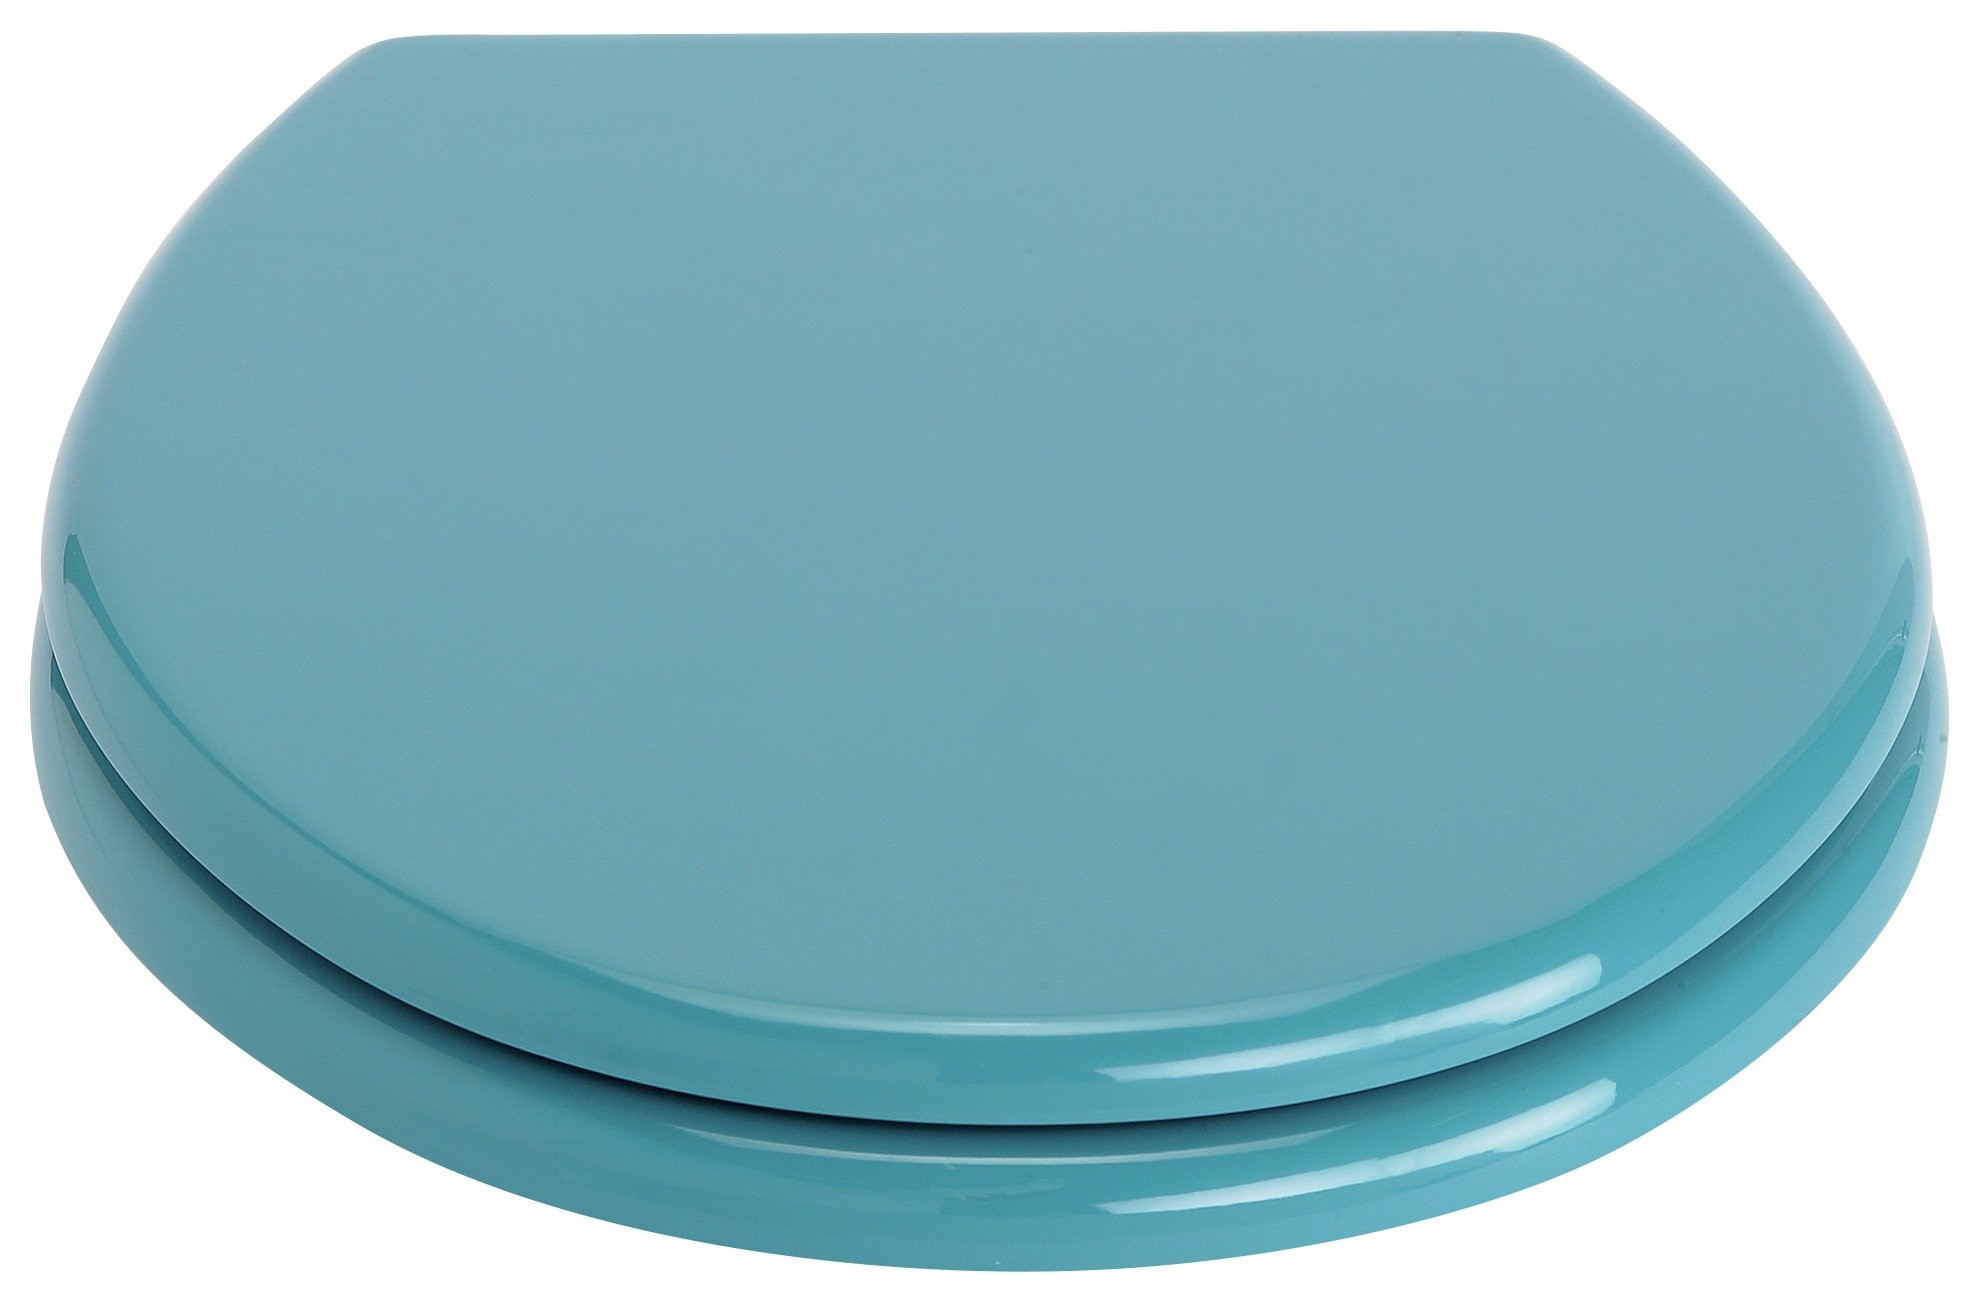 sale on colourmatch toilet seat teal colourmatch by. Black Bedroom Furniture Sets. Home Design Ideas